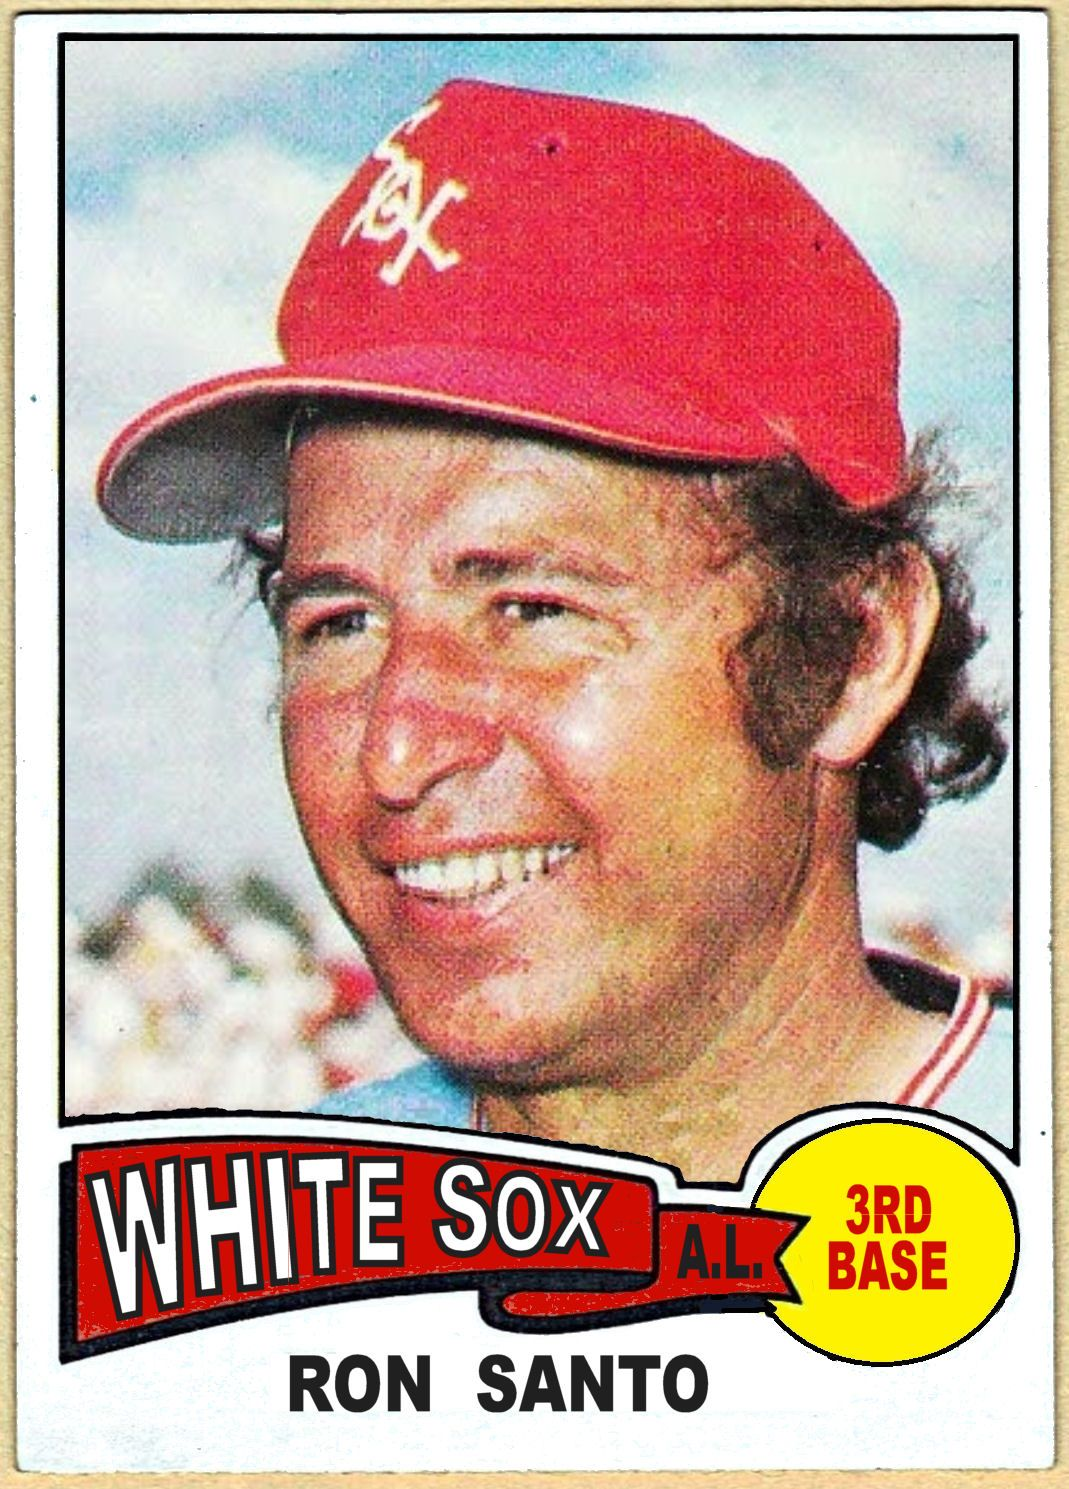 1975 ron santo with images white sox baseball